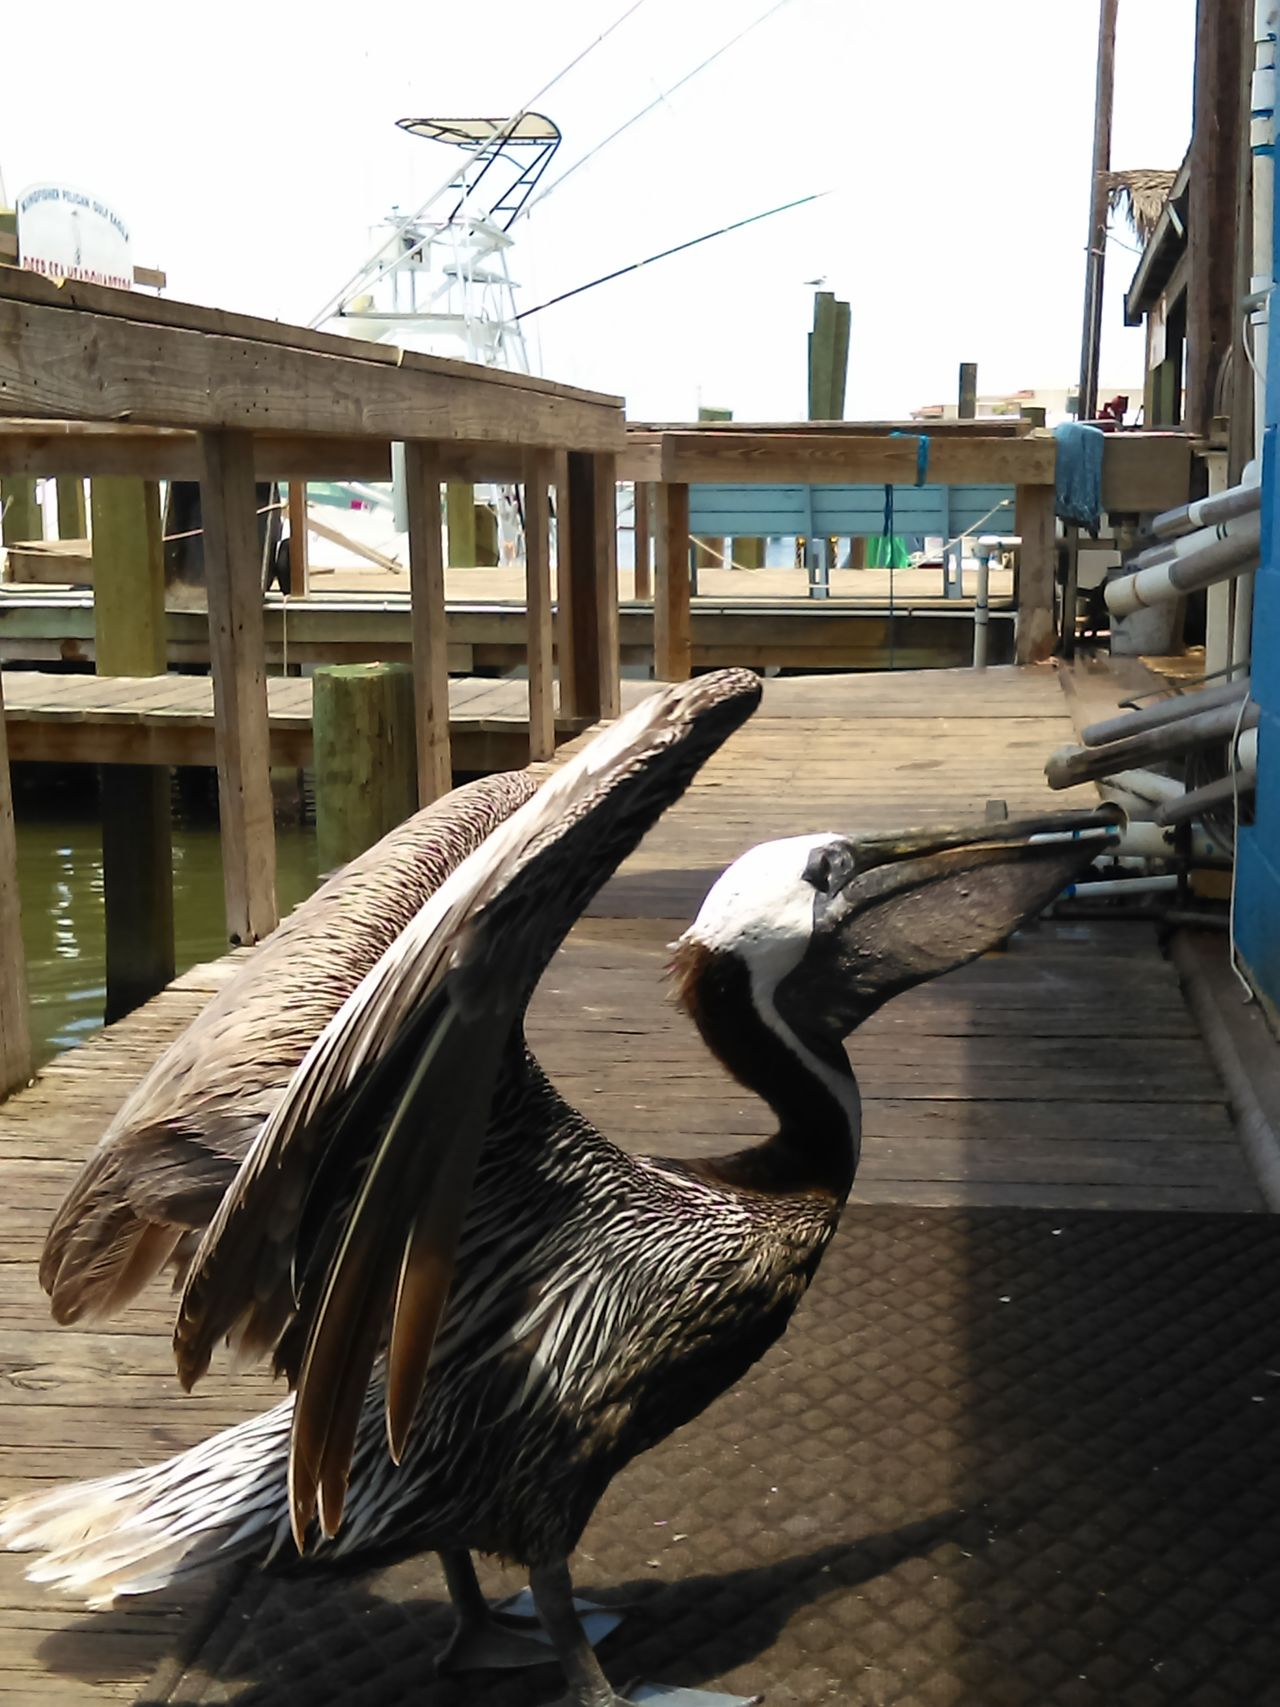 Meet Sam Brown Pelican Male Adult Island Native Gulf Of Mexico